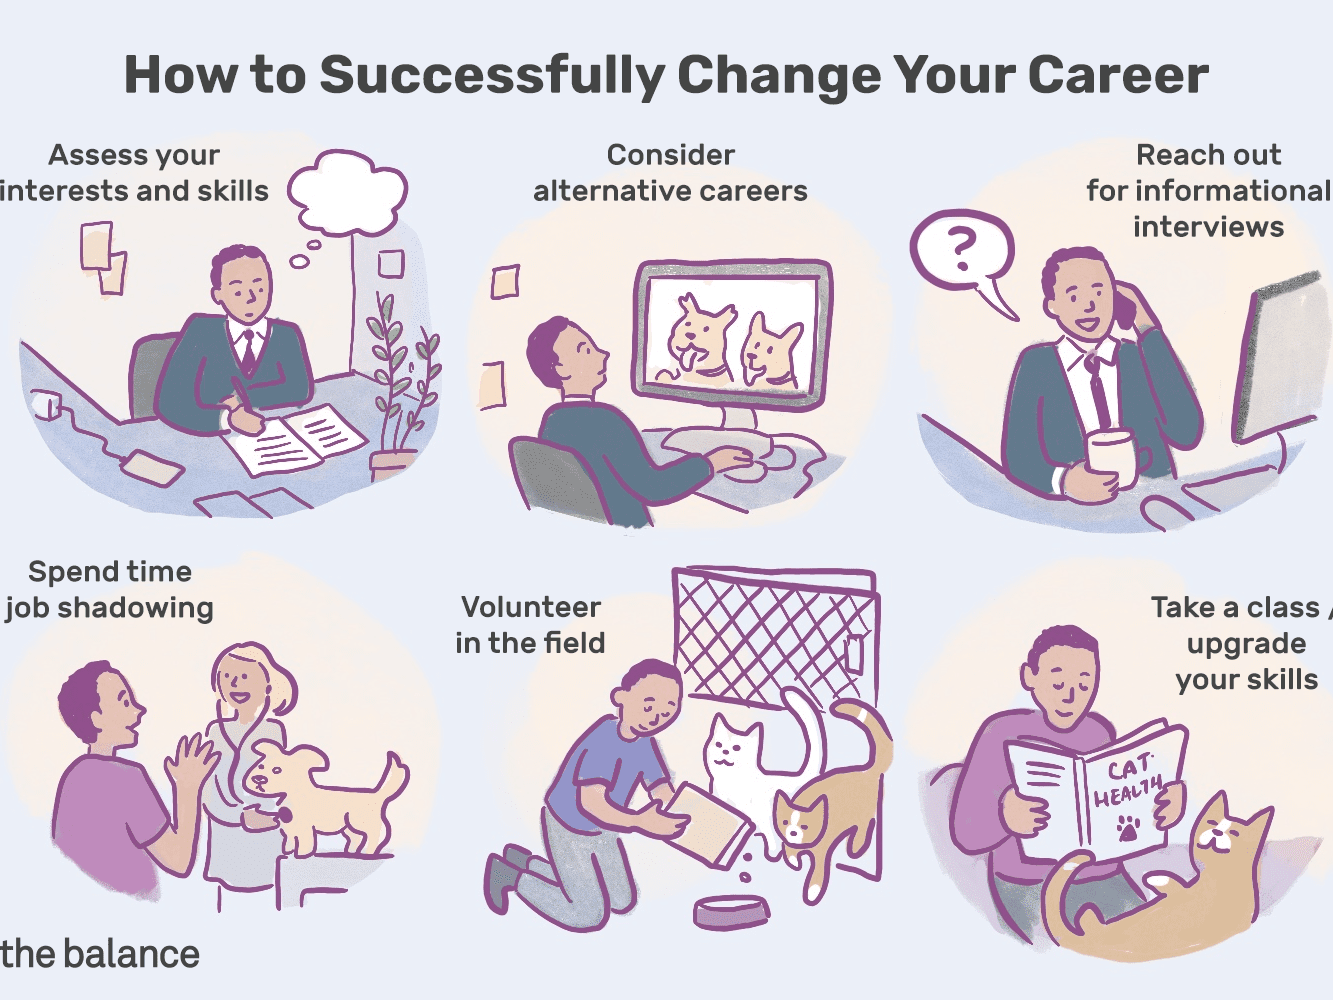 How to Make a Career Change